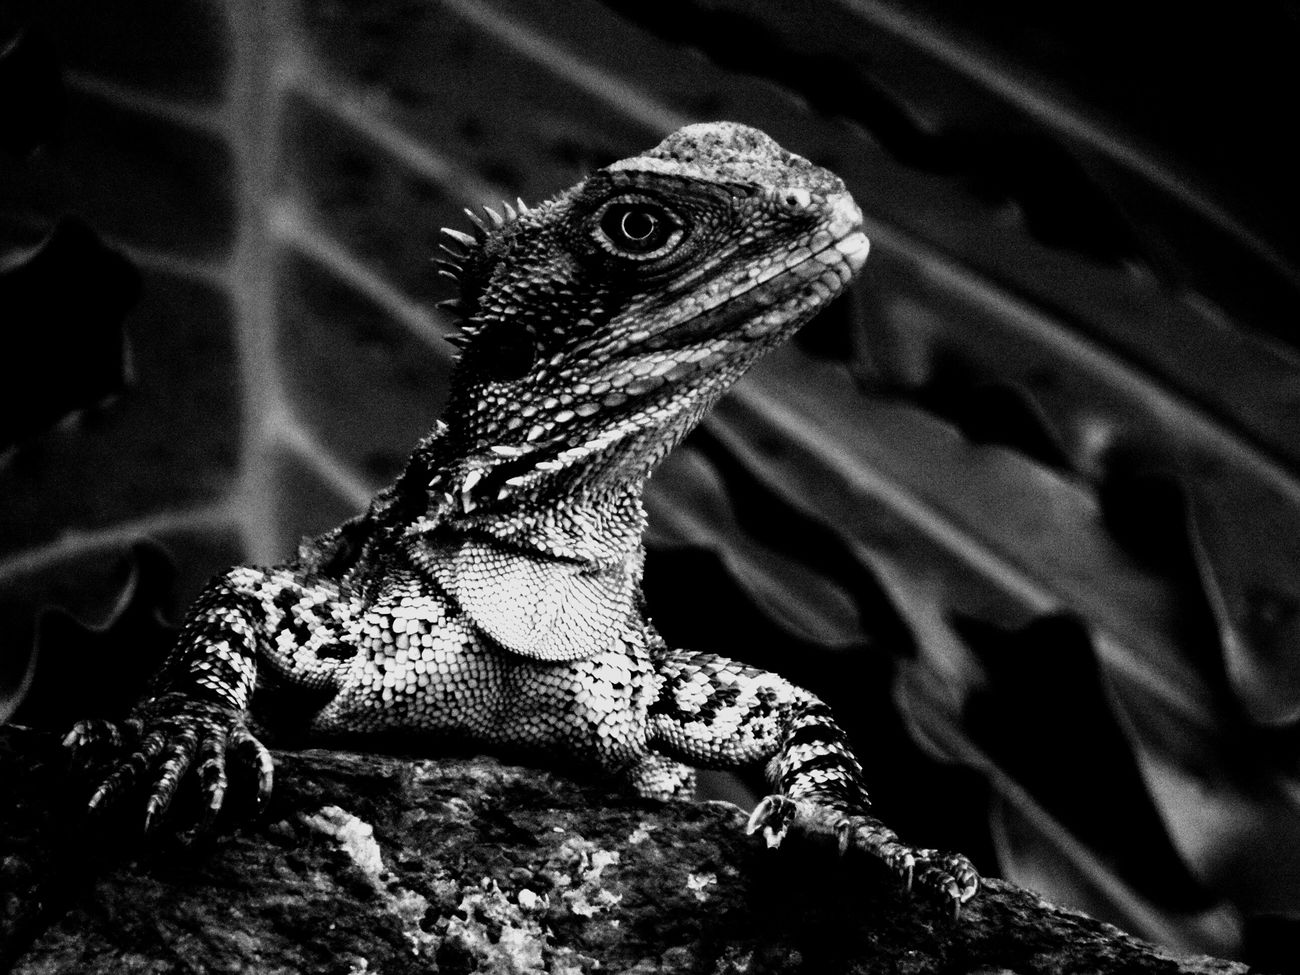 One Animal Reptile Animal Themes Bearded Dragon Lizard Animal Wildlife Animals In The Wild Nature No People Close-up Iguana Outdoors Blackandwhite Bearded Dragon Coldblooded Photography